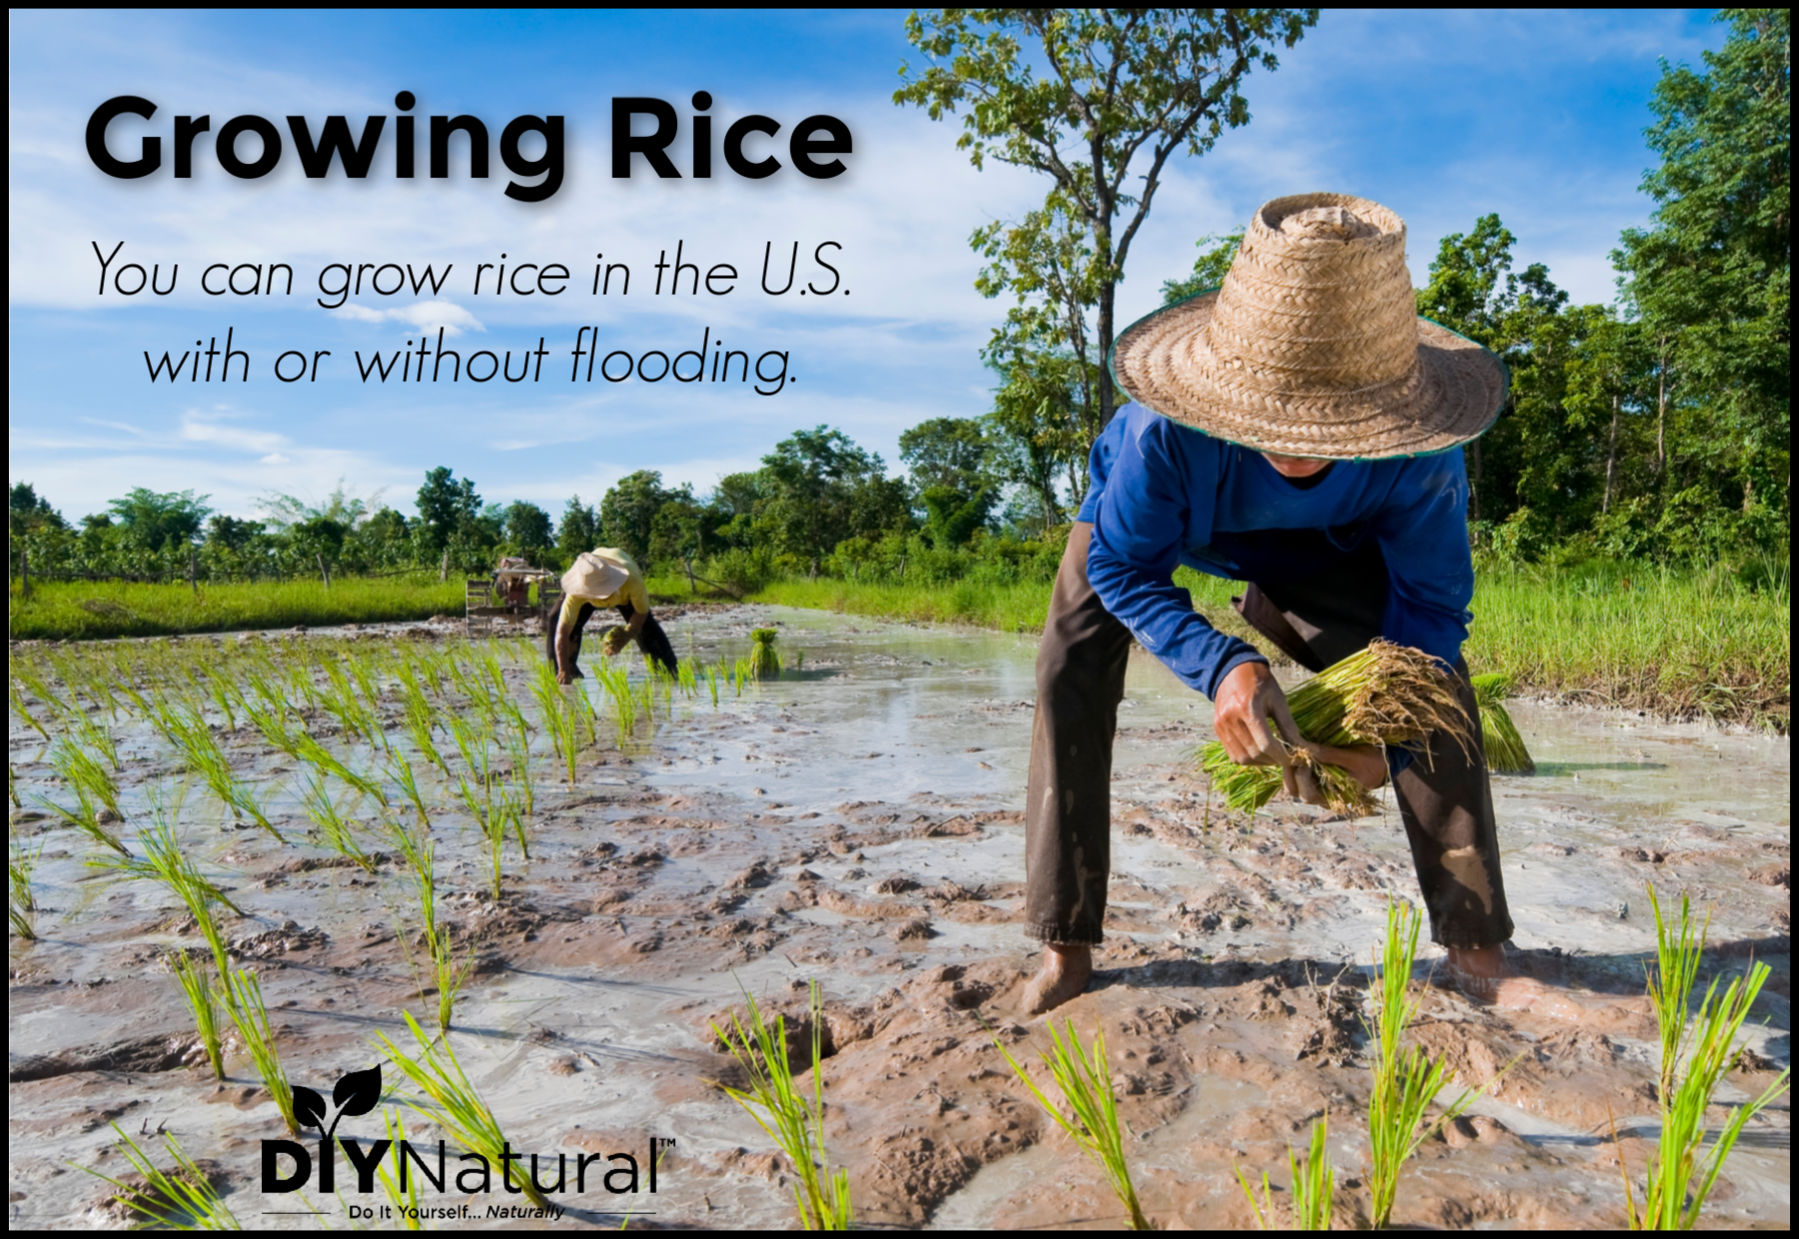 Growing Rice You Can Grow Rice In The U S With Or Without Flooding